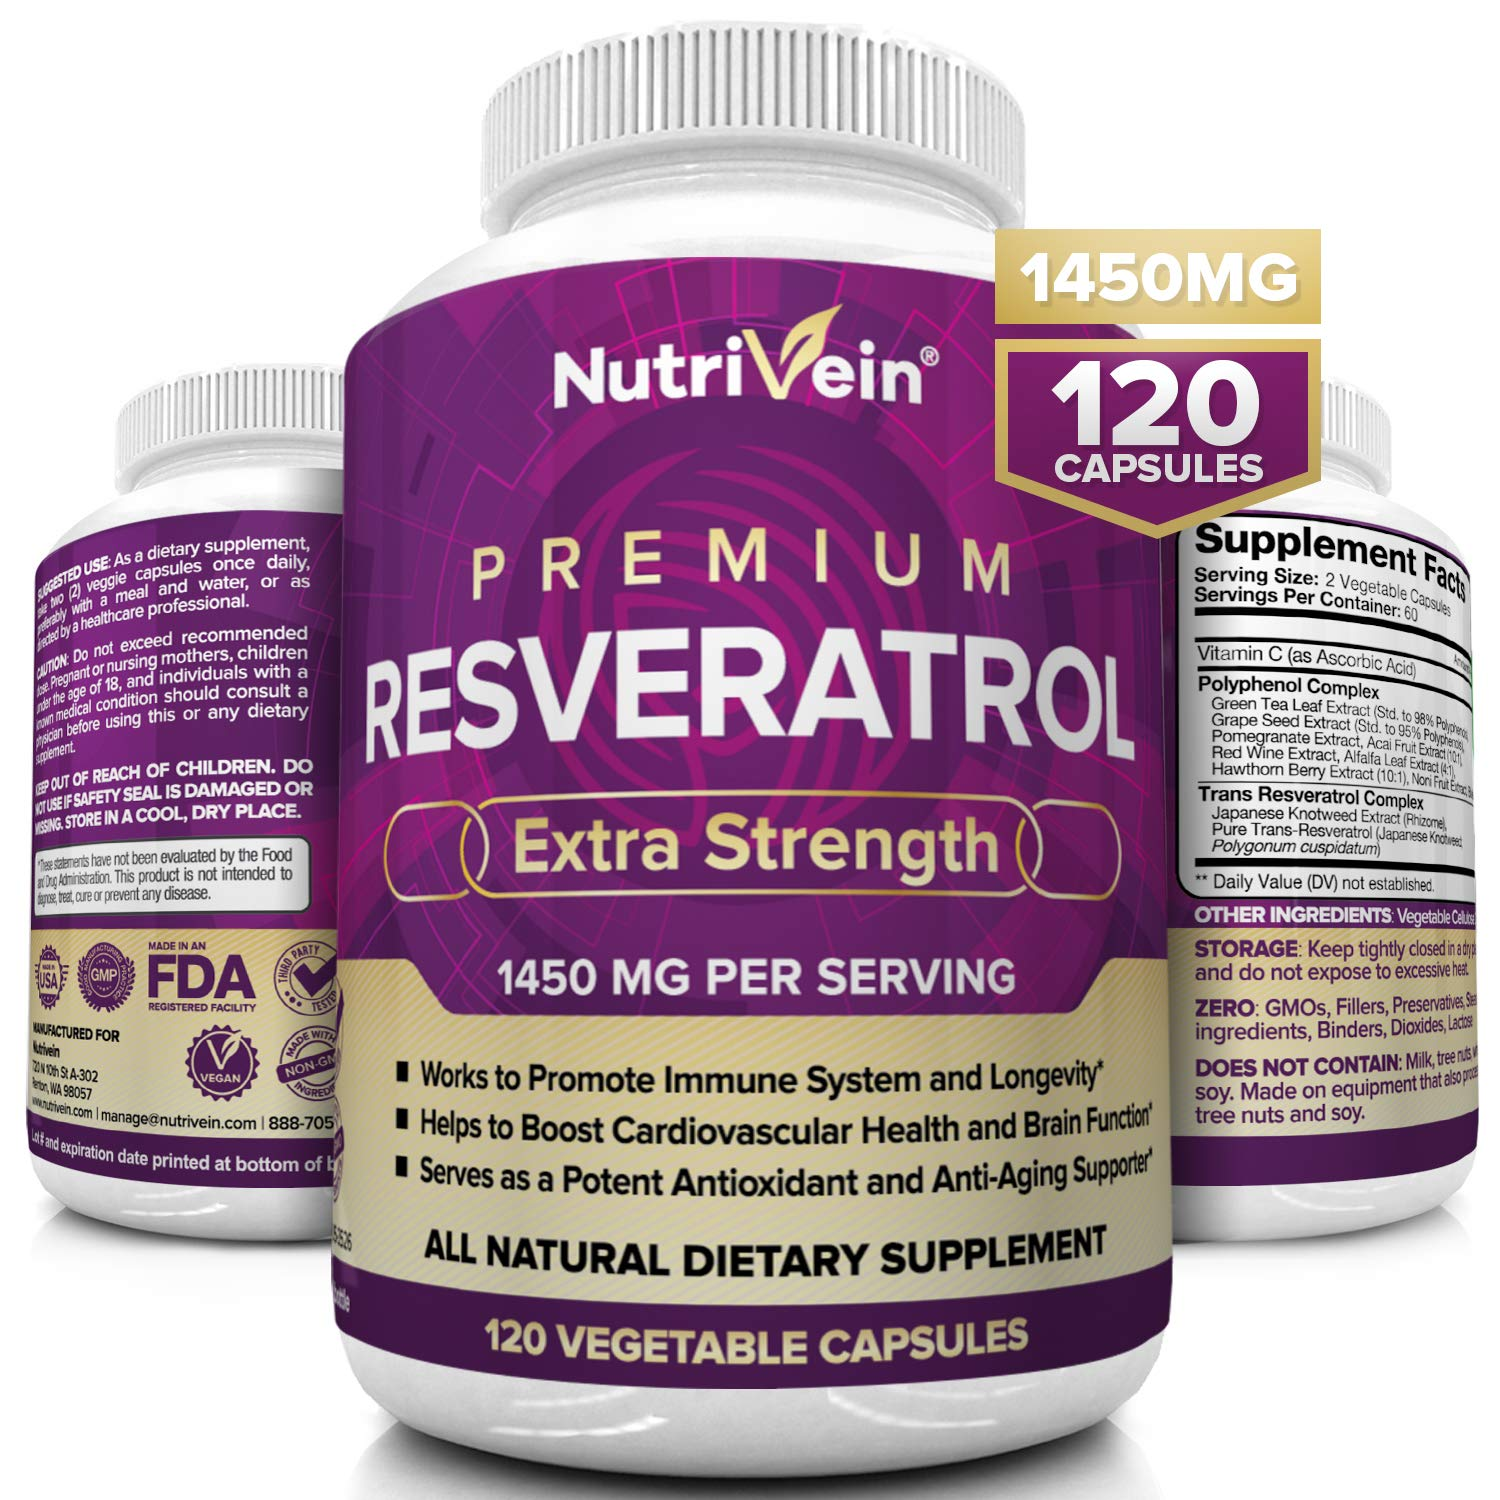 Nutrivein Resveratrol 1450mg - Antioxidant Supplement 120 Capsules – Supports Healthy Aging and Promotes Immune, Blood Sugar and Joint Support - Made with Trans-Resveratrol, Green Tea Leaf, Acai Berry